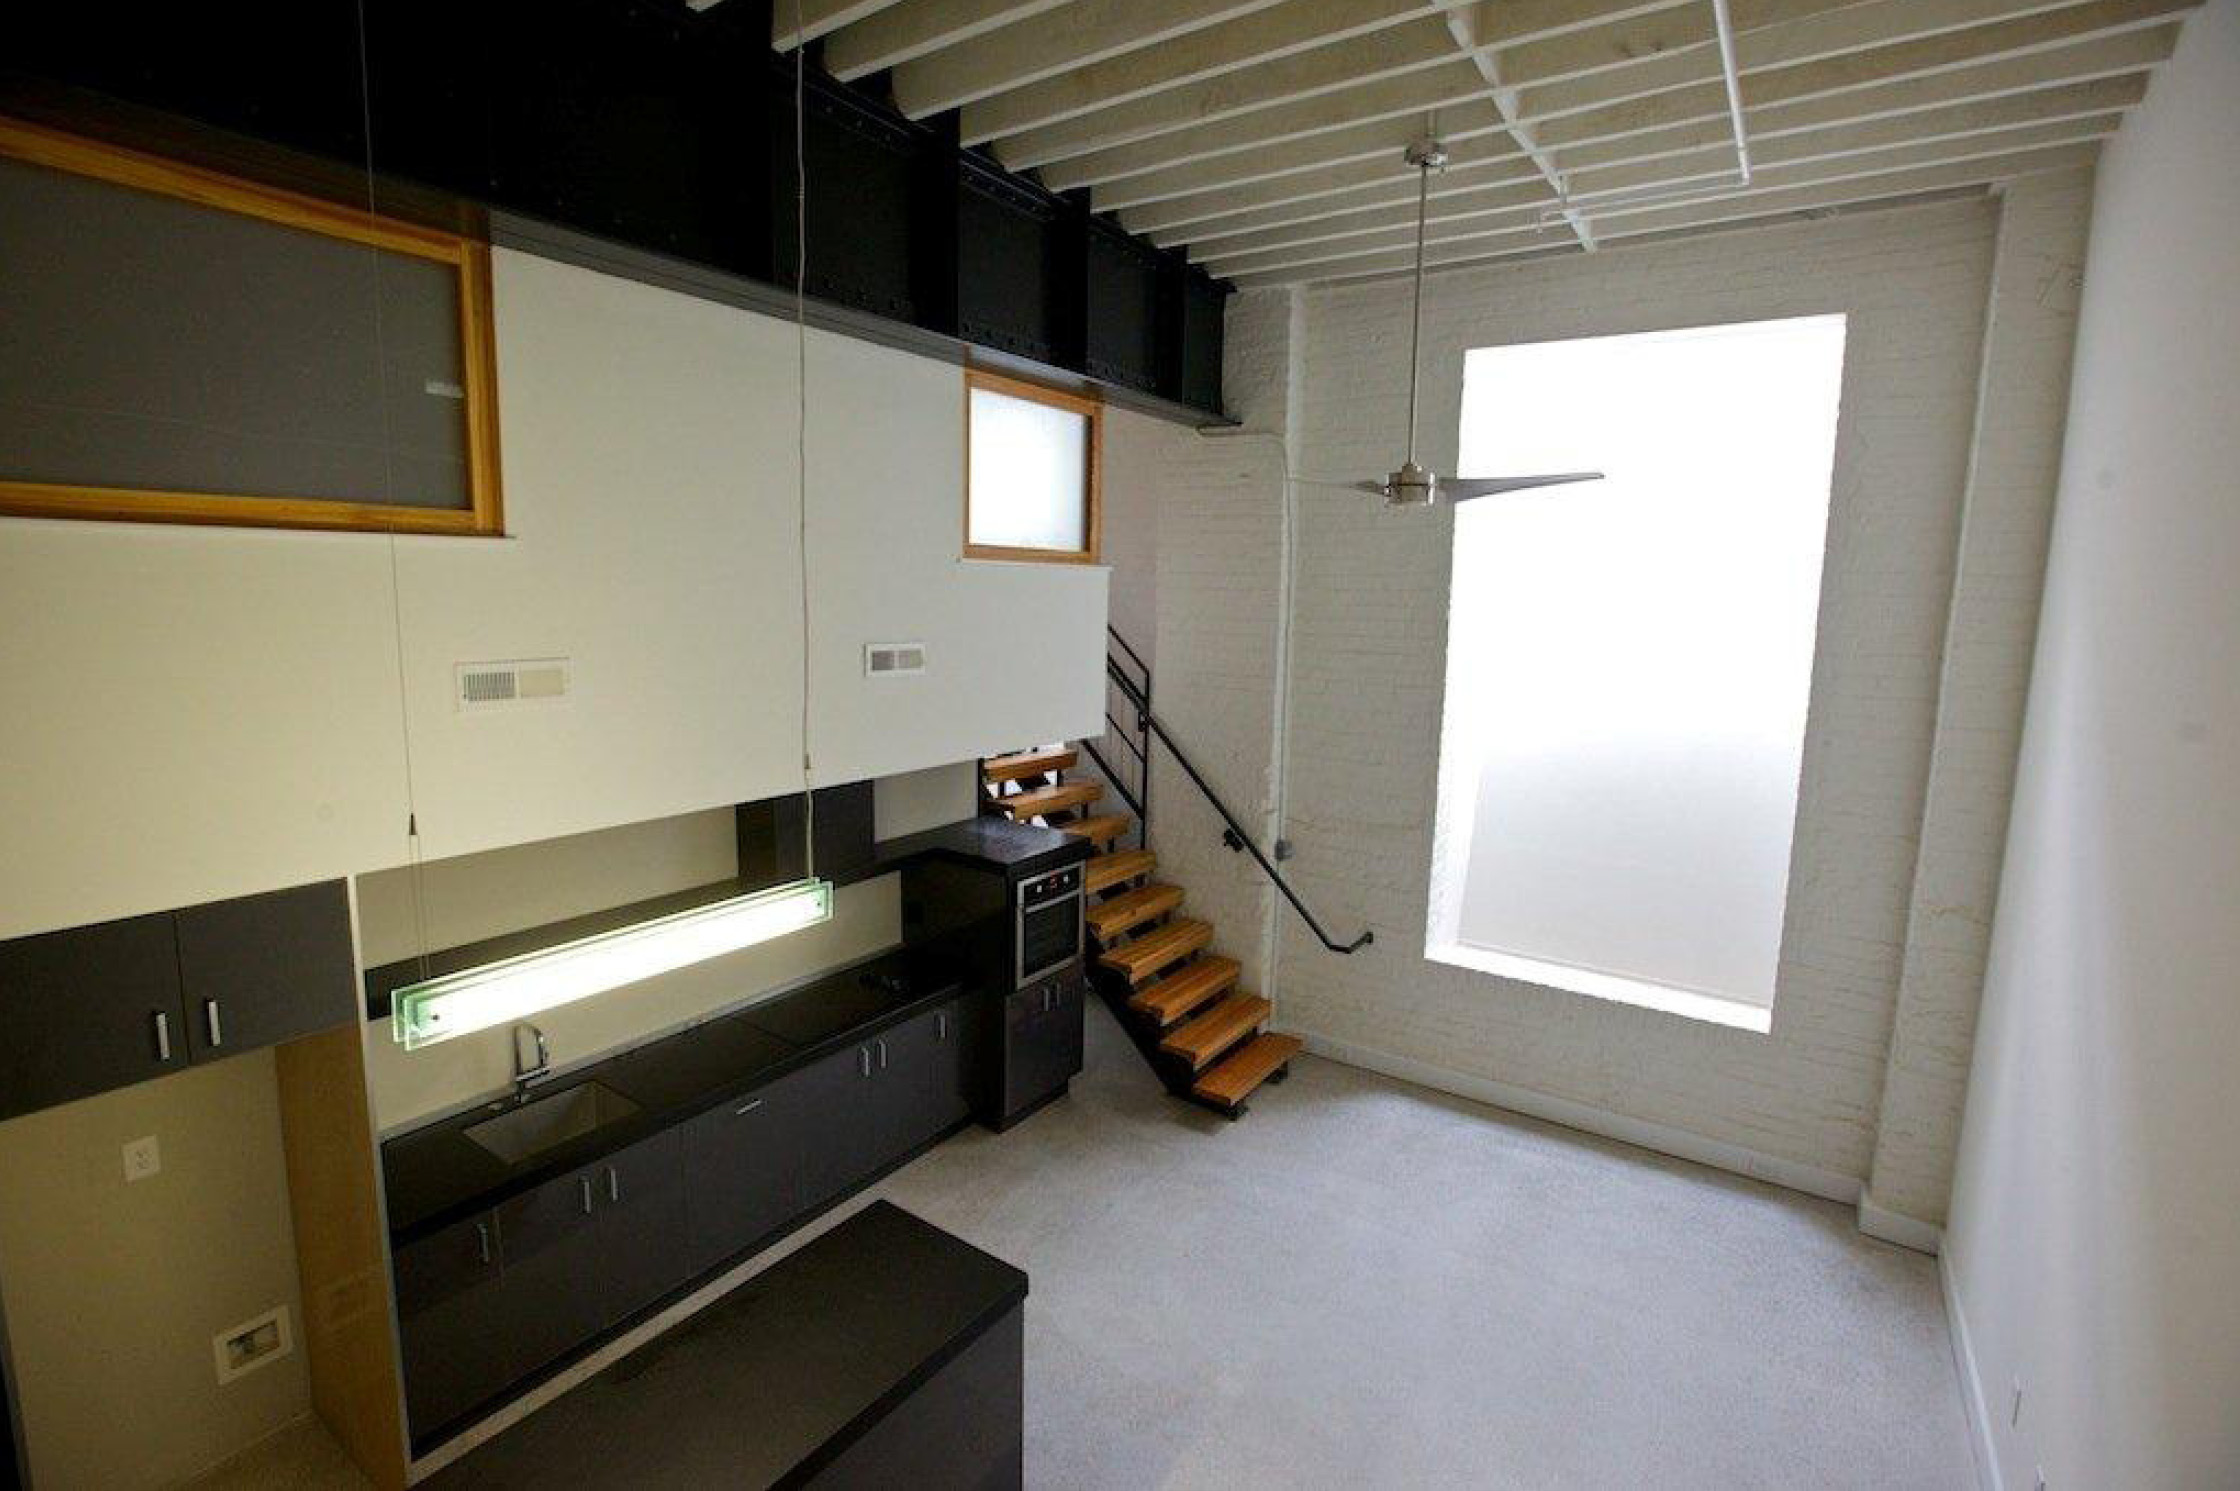 Lower Level Loft Unit with Light Well